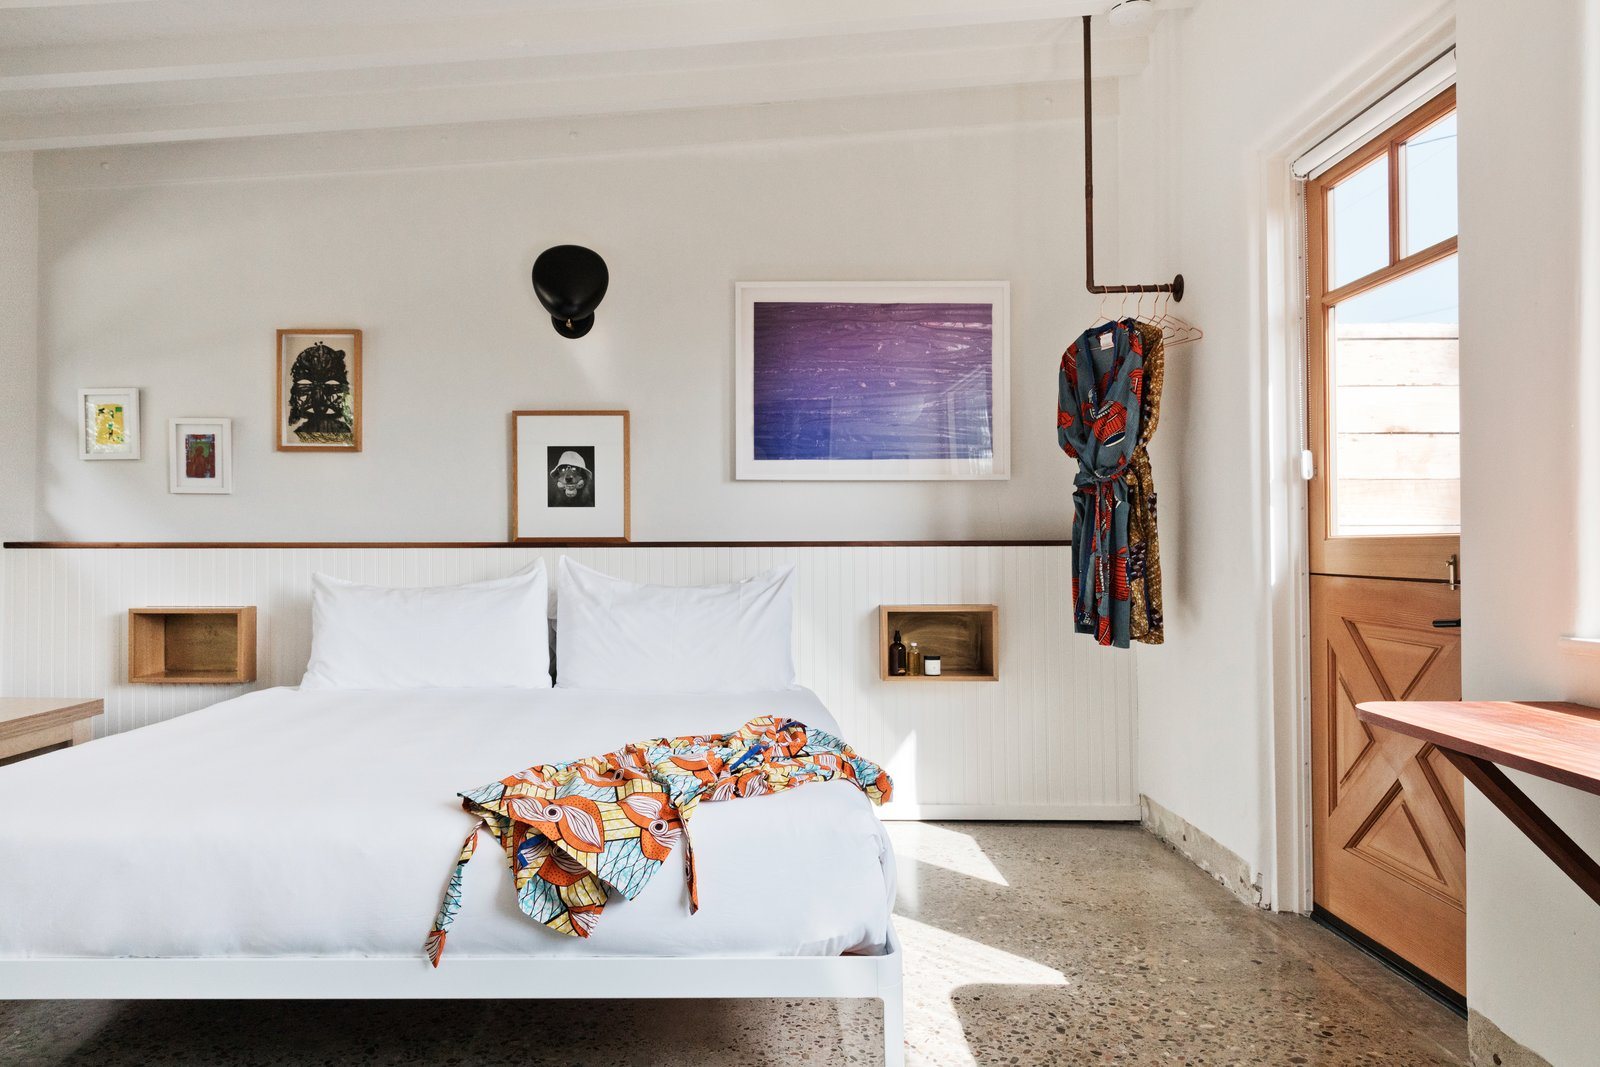 Bedroom, Bed, Wall, Shelves, and Terrazzo As if you needed another excuse to visit Malibu, Native beckons as a stylish getaway with a storied past. Rooms start at $400 a night.  Best Bedroom Terrazzo Bed Photos from Do Malibu in Style With the Native Hotel, a Rejuvenated Hollywood Favorite